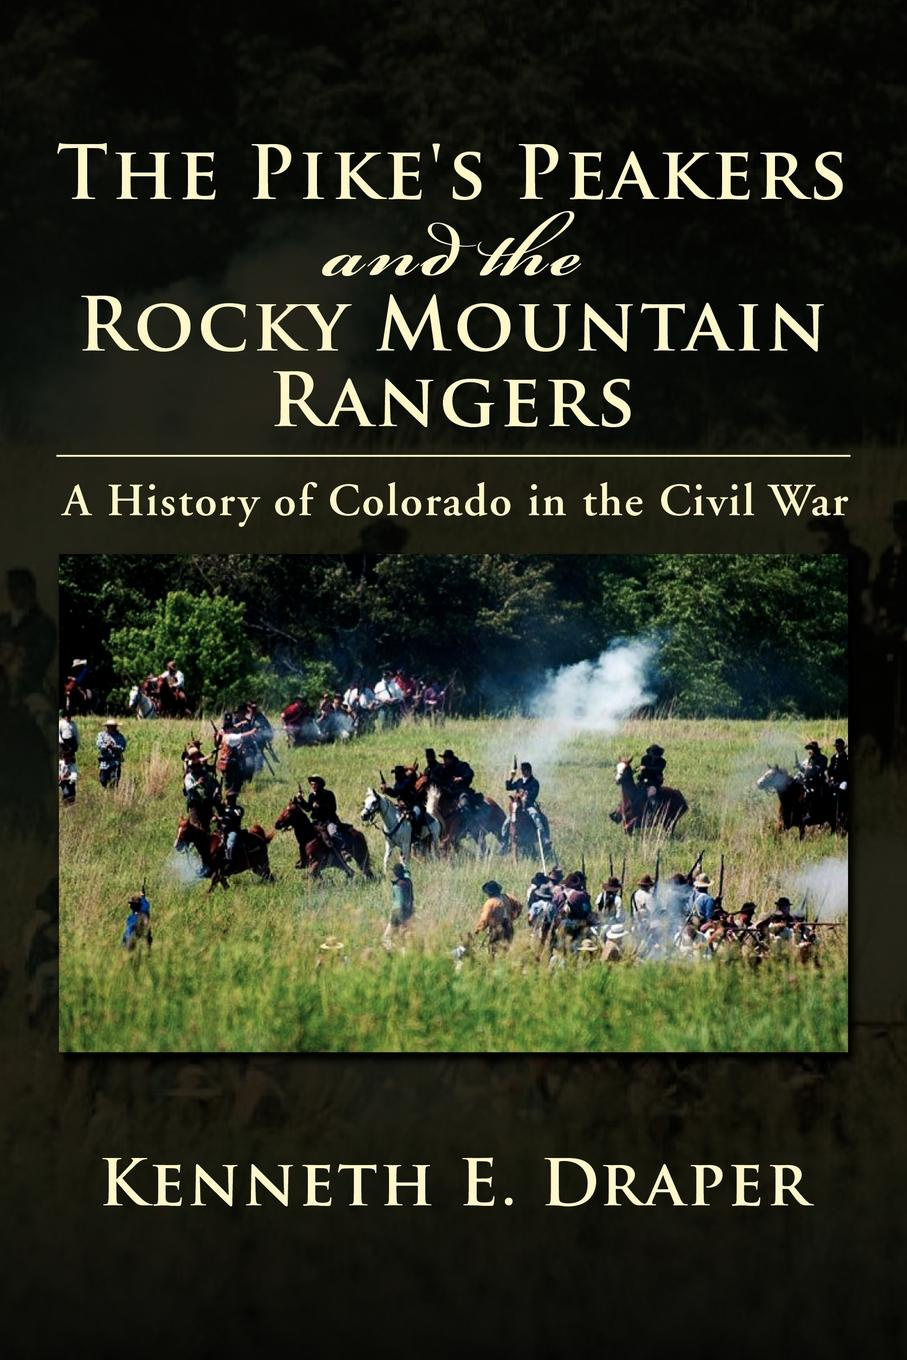 Kenneth E. Draper The Pike's Peakers and the Rocky Mountain Rangers. A History of Colorado in the Civil War cindi myers rocky mountain revenge